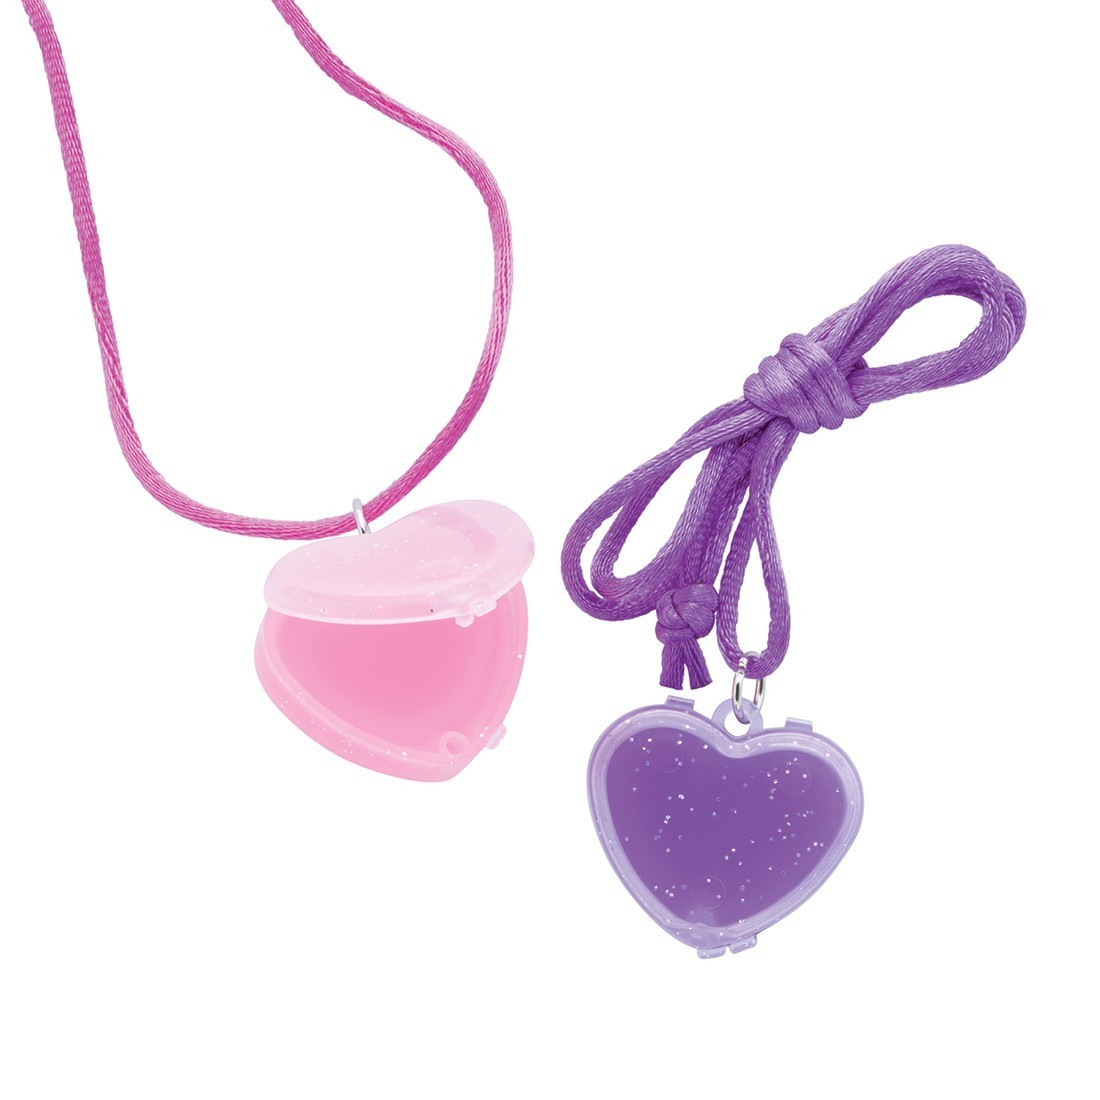 Heart Lipgloss Necklaces [image]